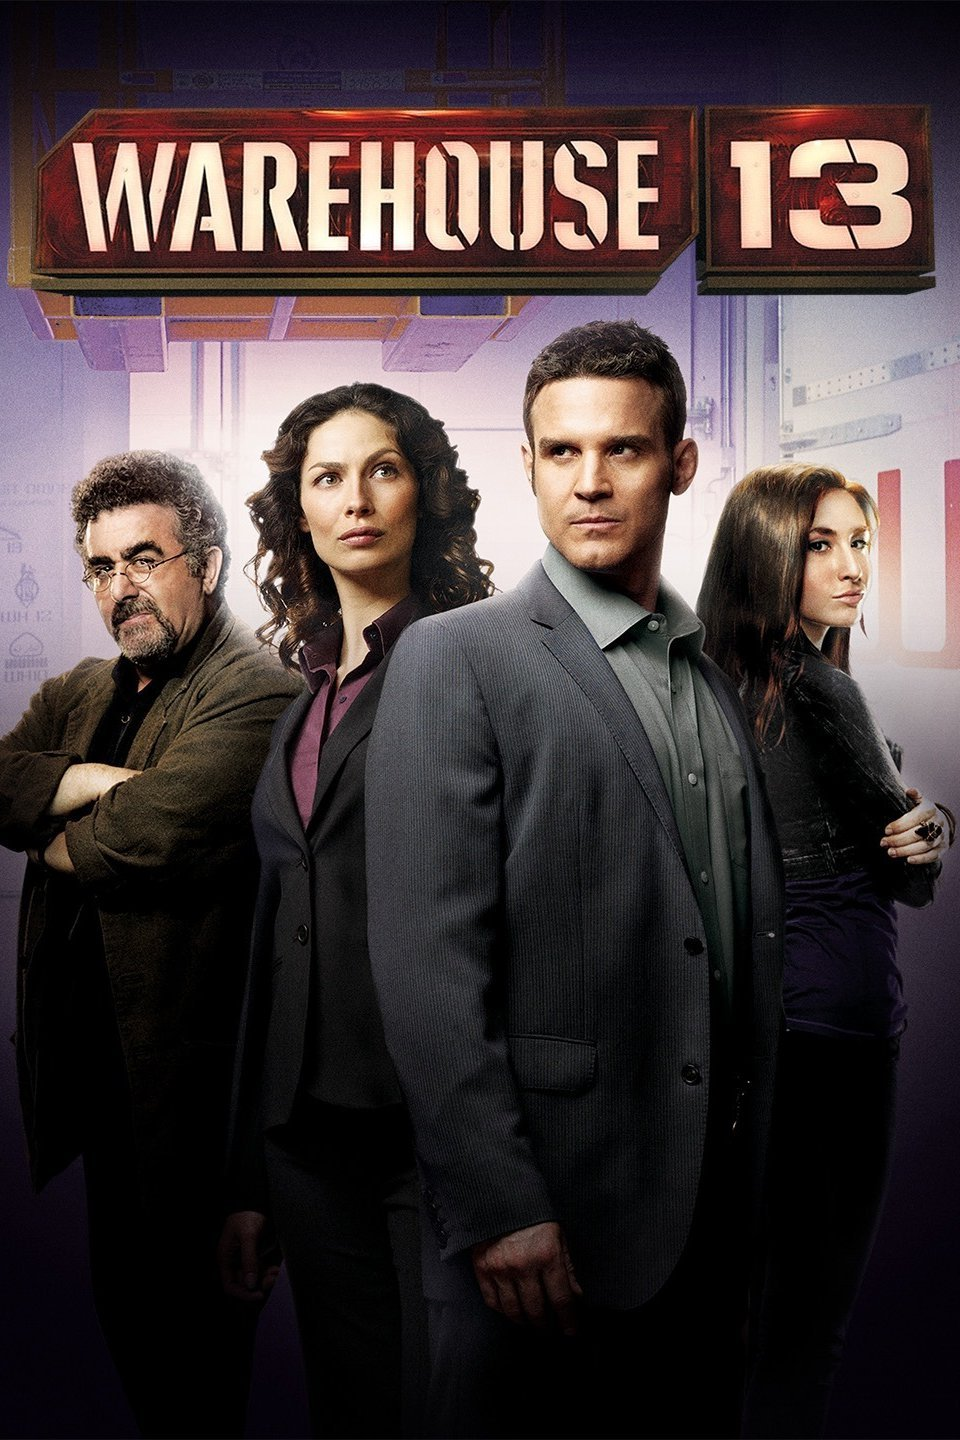 Warehouse 13 Season 3 Download Complete 480p WEB-DL